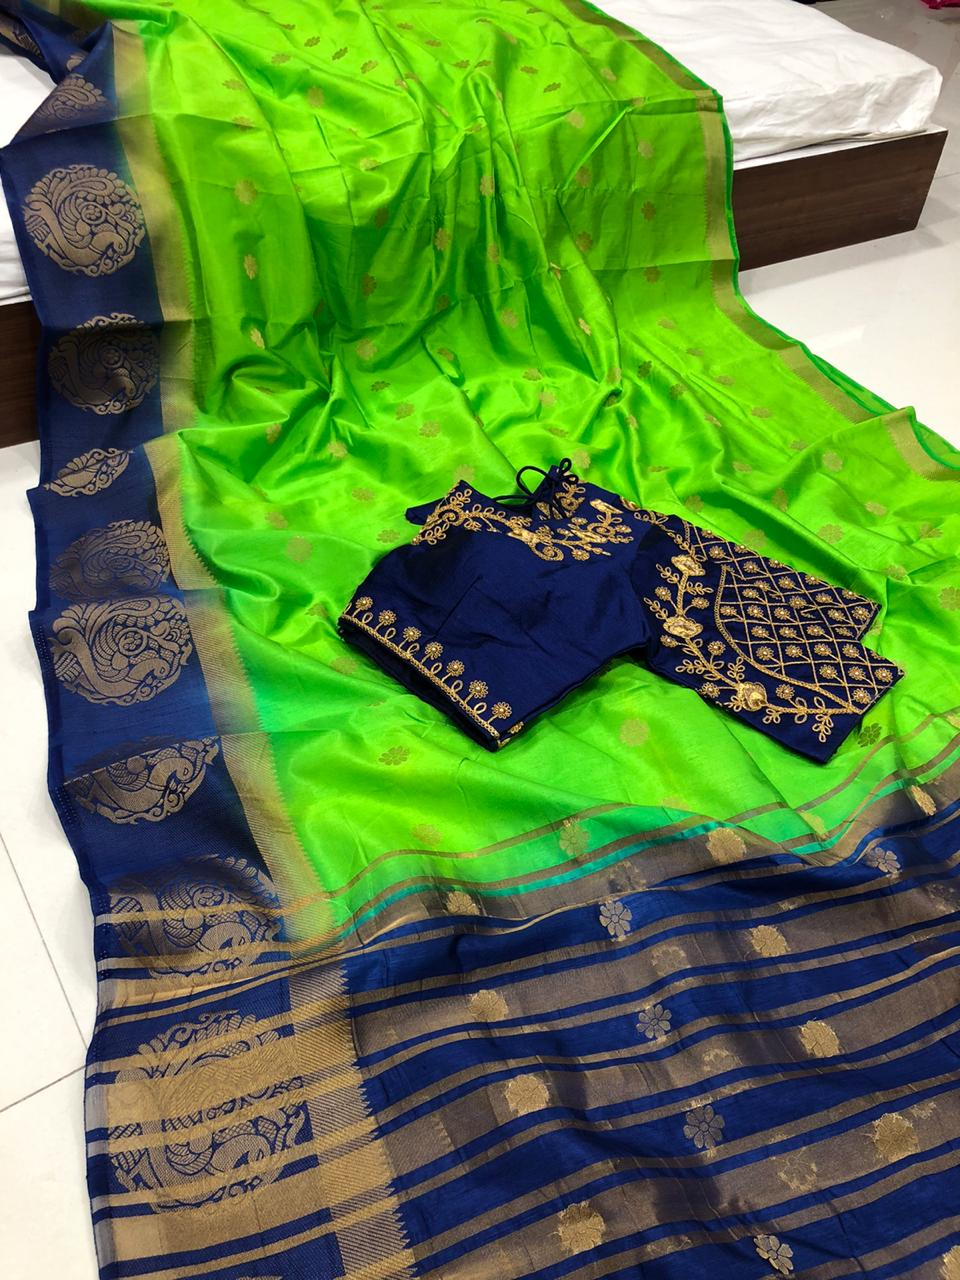 Good looking Green Color Fancy Mutli Thread Kanjivaram Butti Full Stitched Blouse Raw Silk Saree For Function Wear